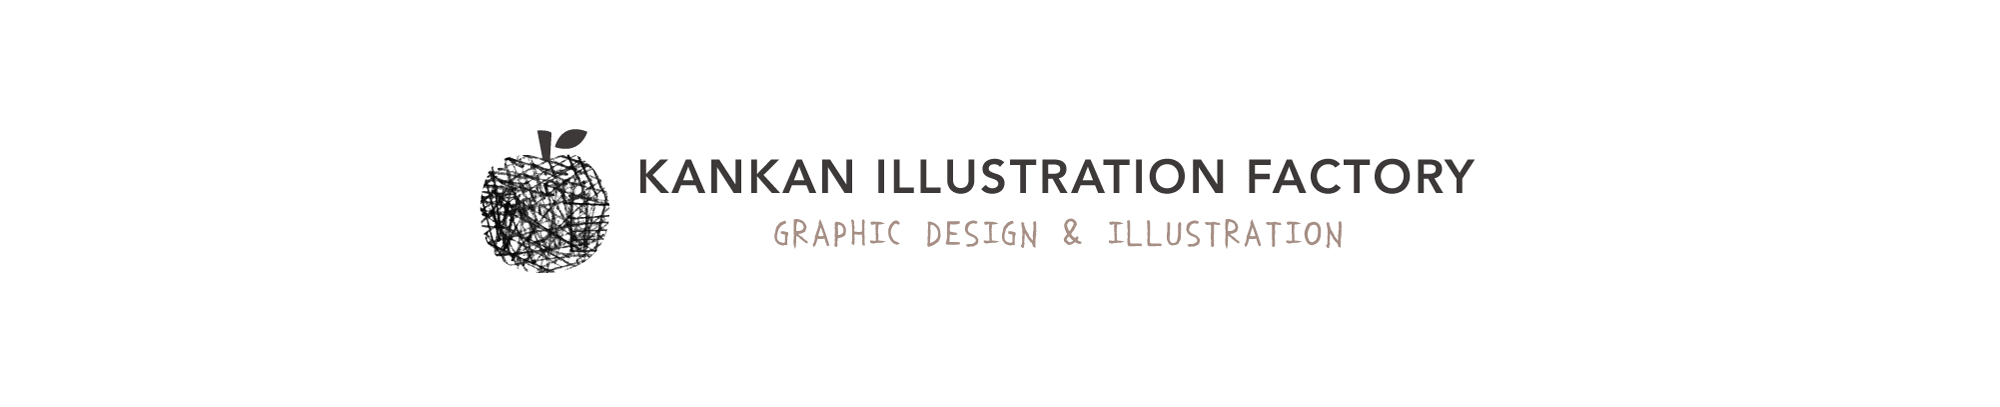 KANKAN ILLUSTRATION FACTORY